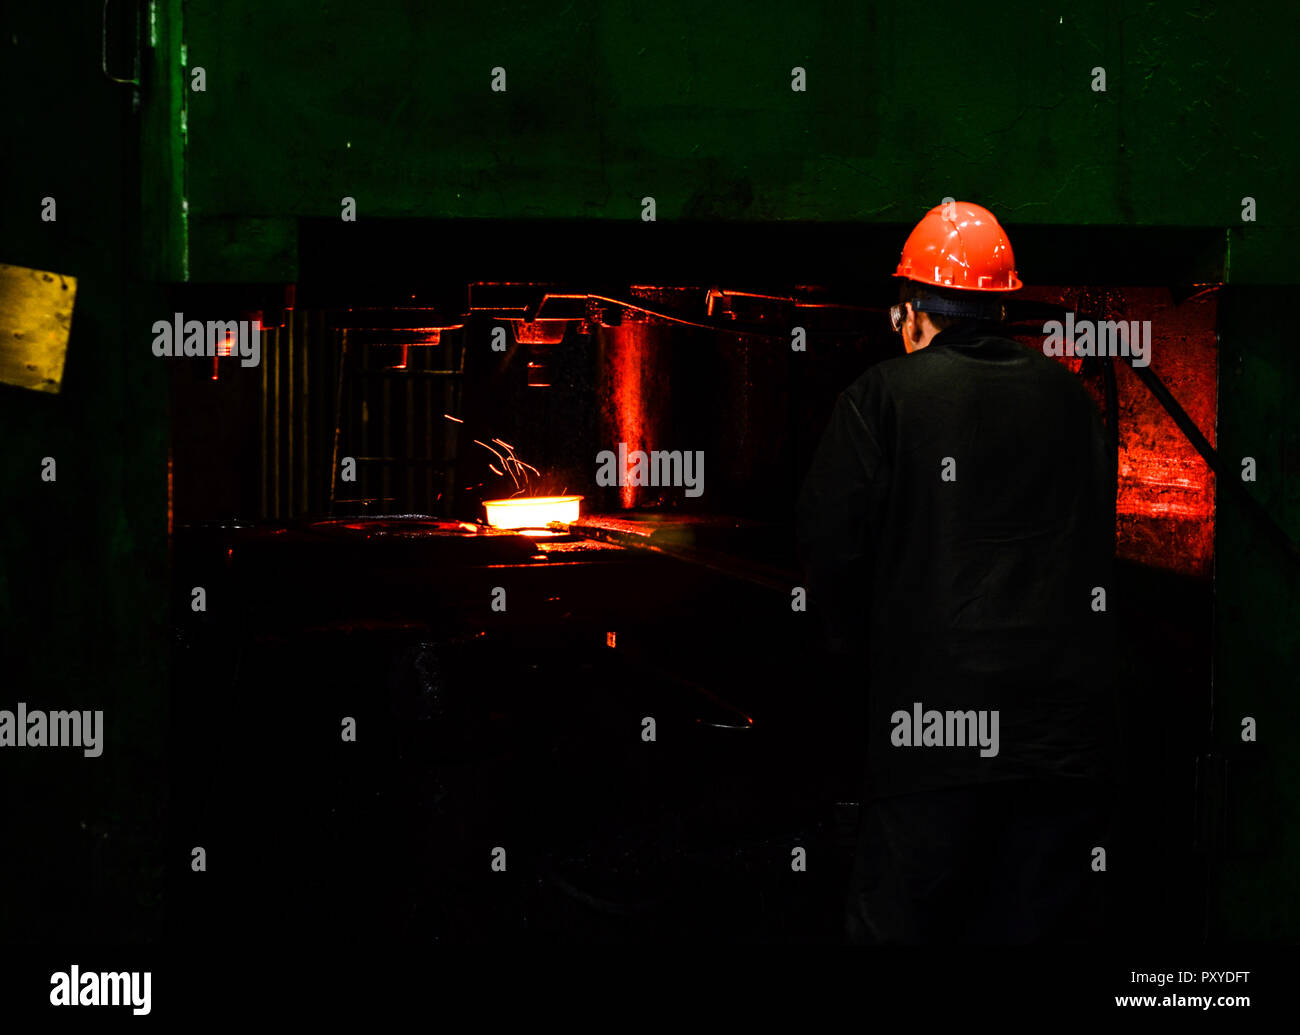 Hot iron in smeltery held by a worker. Iron melting recycling work. Heavy forging steelmaking plant and steelmaking workshop. Stock Photo